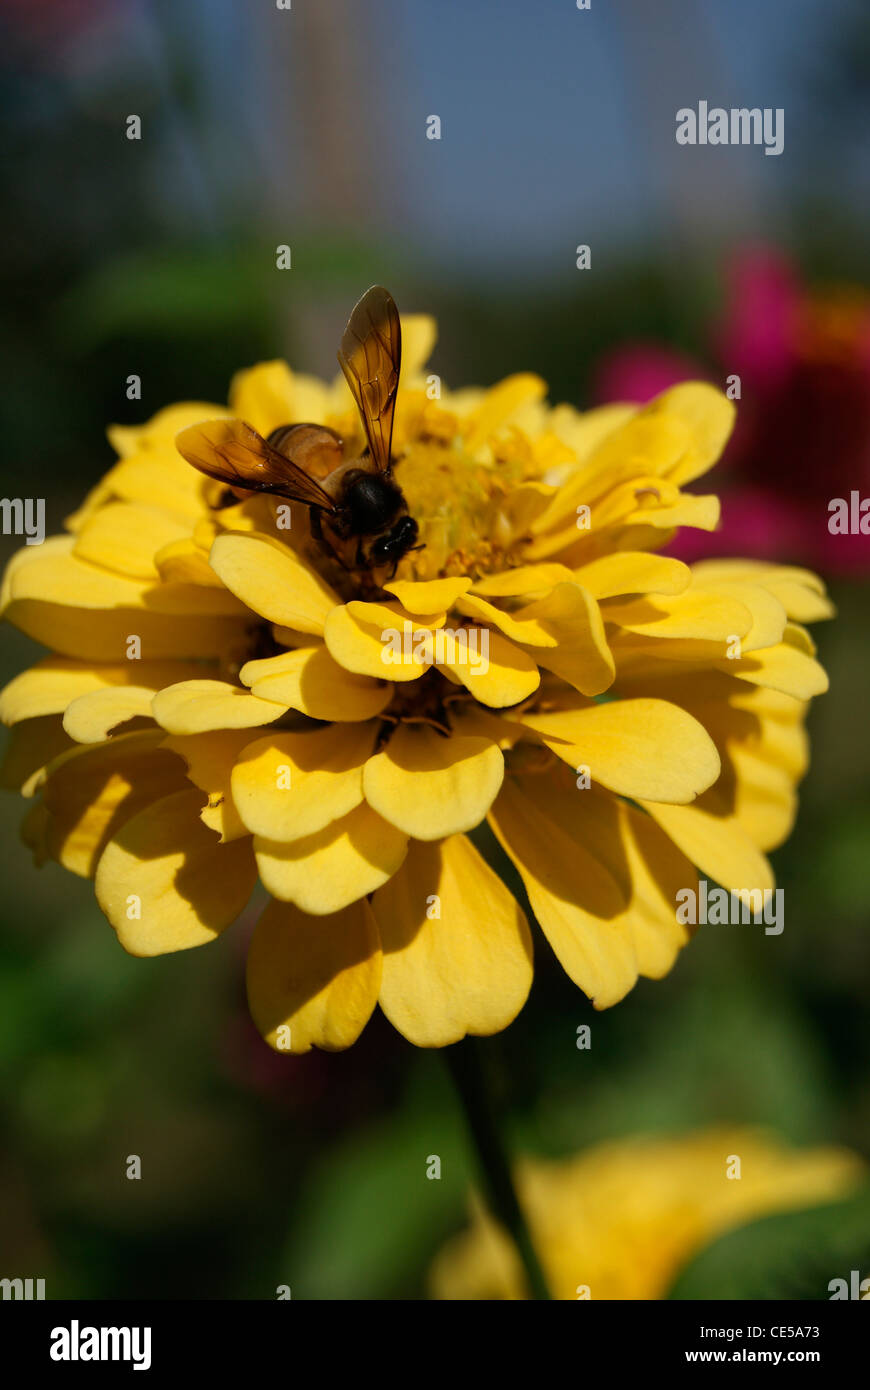 Honey Bee collecting honey from a yellow Dahlia flower - Stock Image